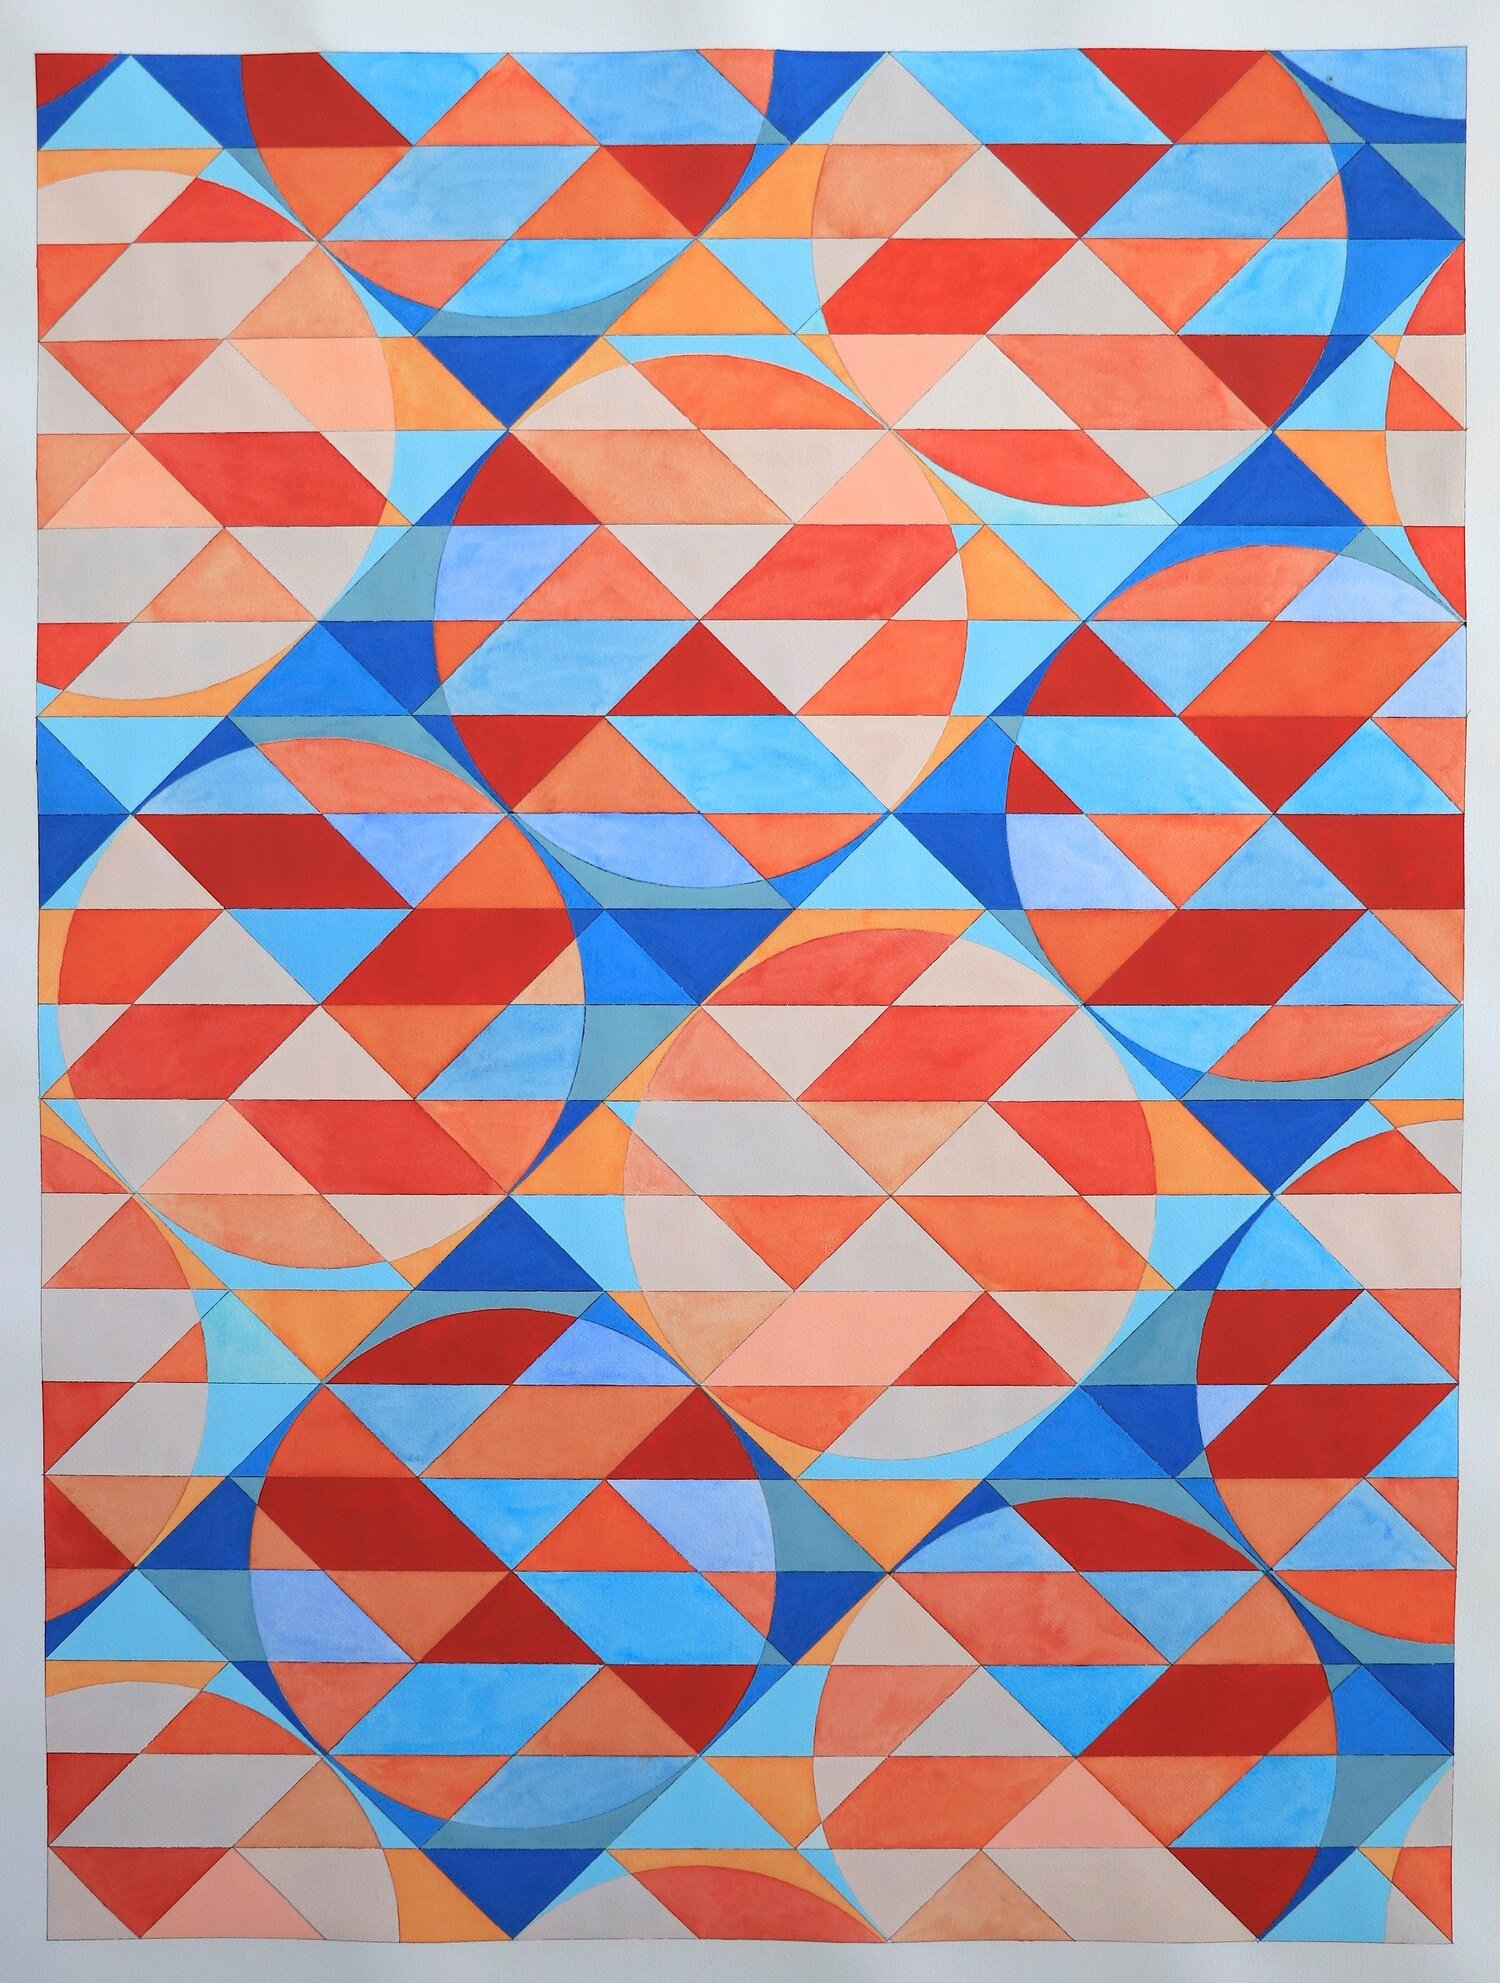 """Ephemeral Triangles No. 15 in Blue and Red. 2018. Watercolor and Gouache on Paper. 48""""x36"""" (Commissioned by Kinzelman Fine Art)"""